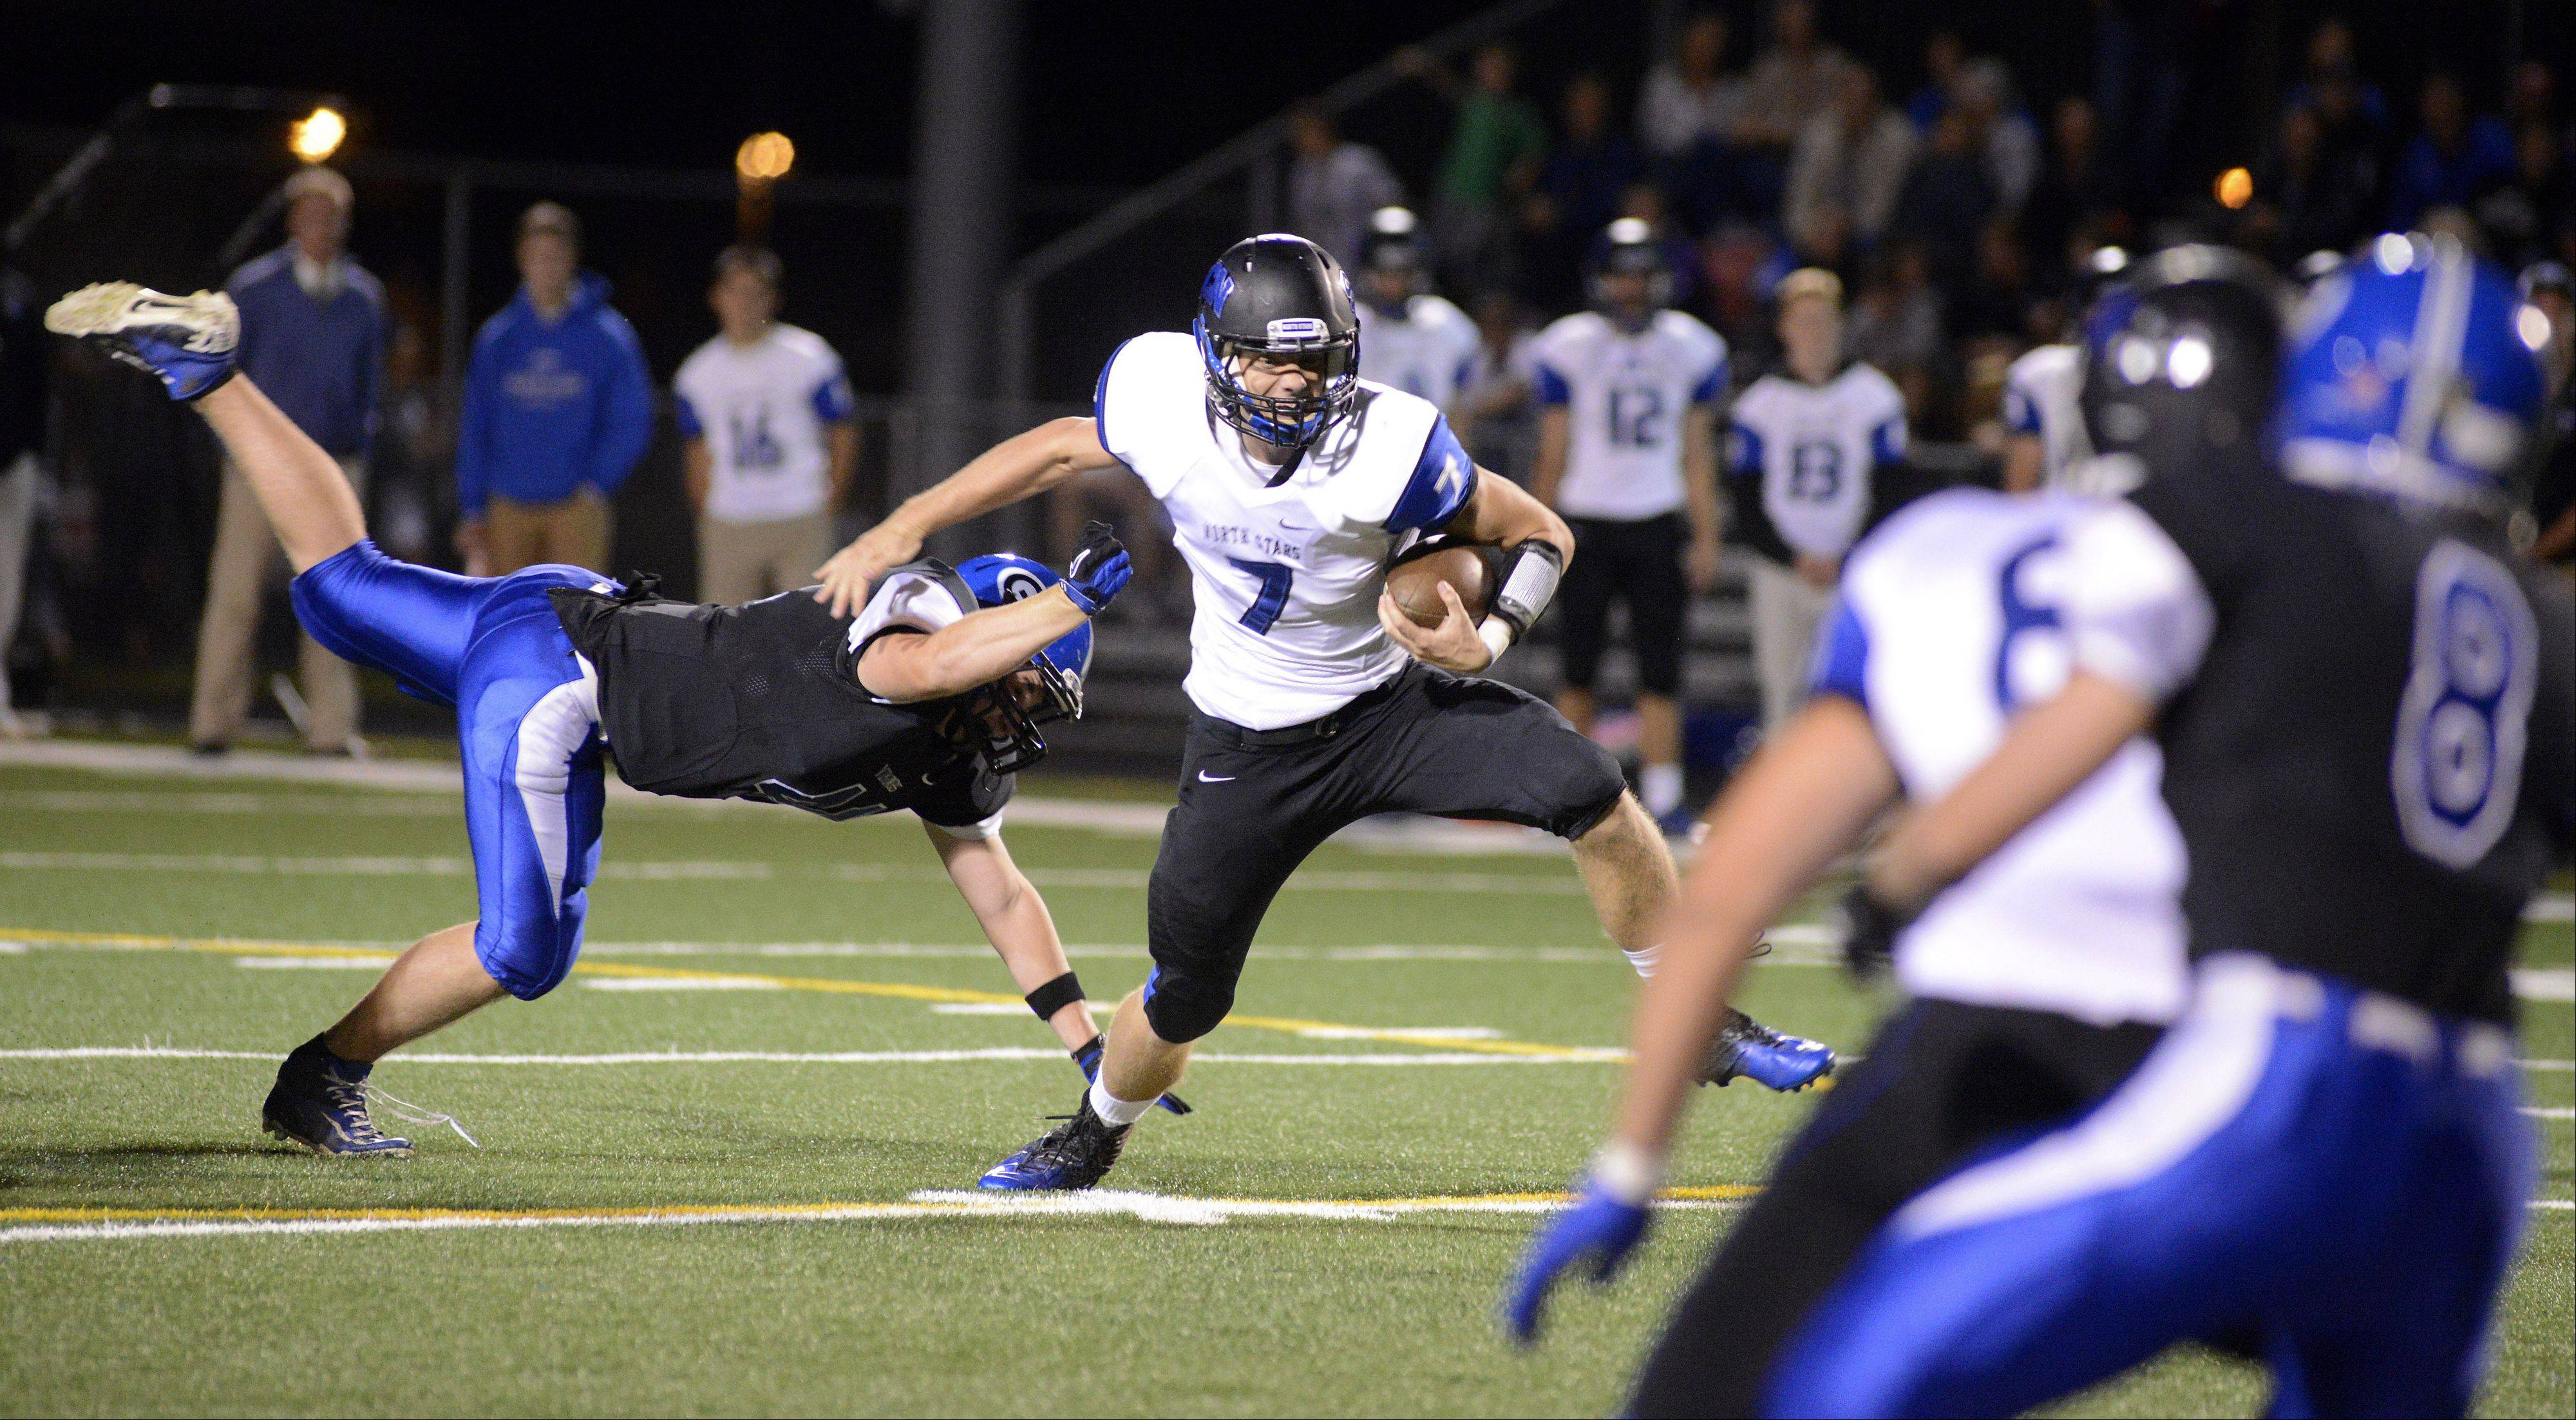 St. Charles North quarterback Erik Mille shakes off Geneva's Wyatt Shodeen in the first quarter.